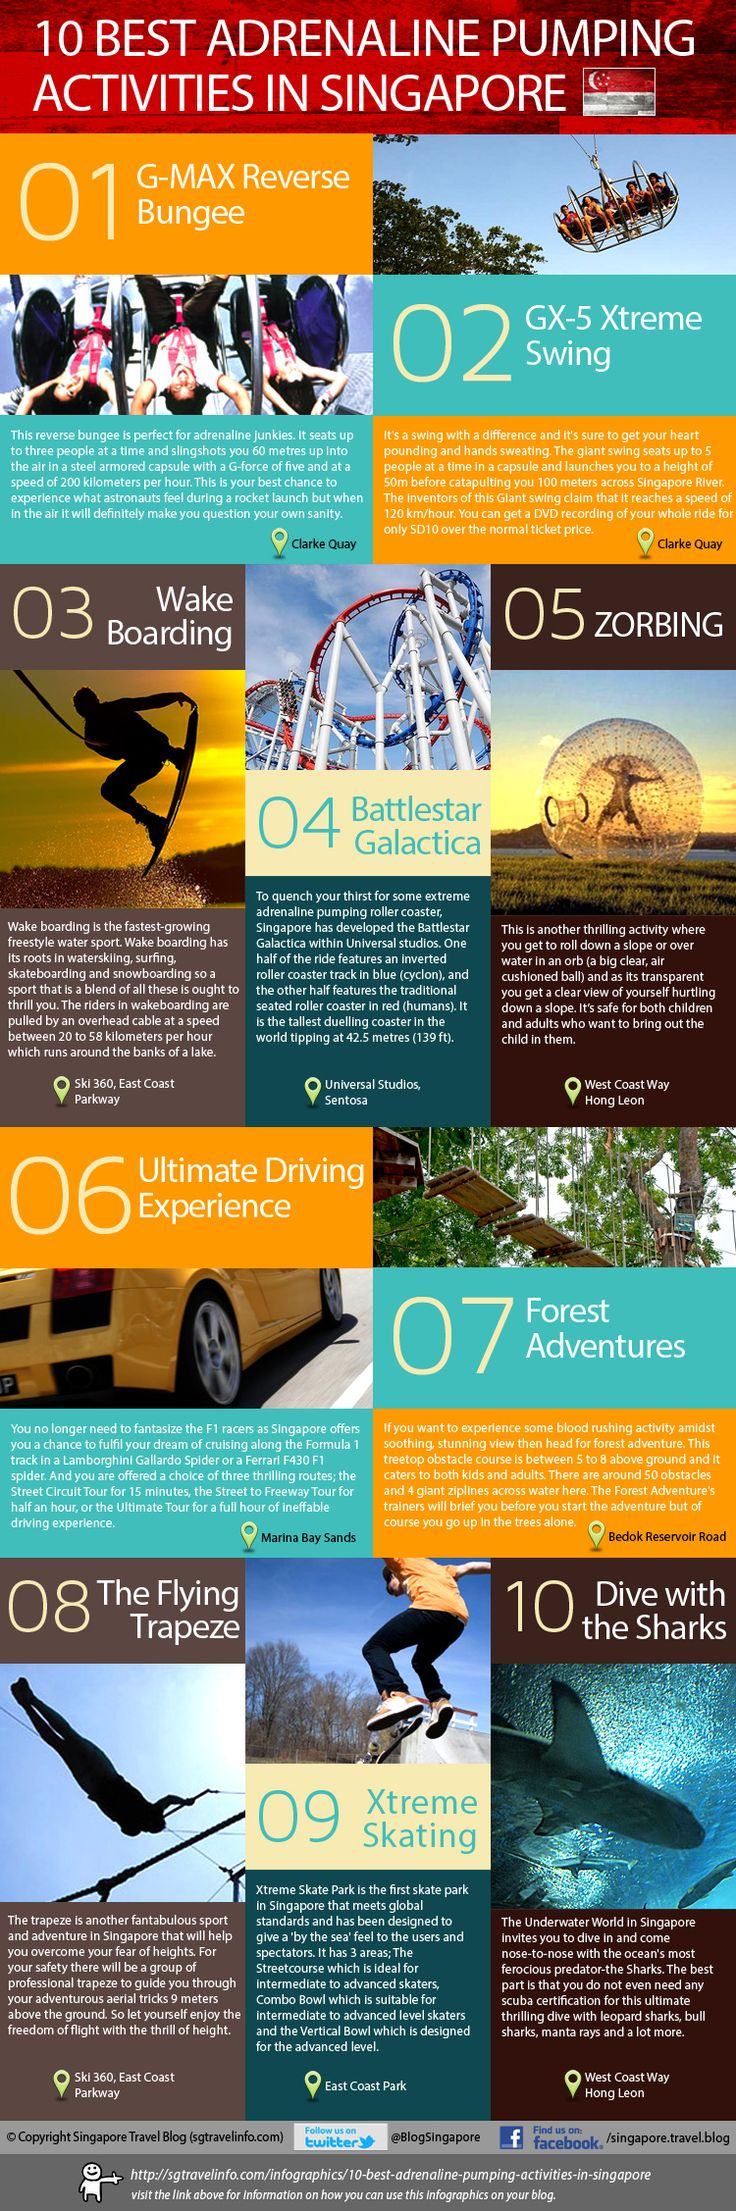 An interesting infographics about 10 best adrenaline pumping activities in Singapore.